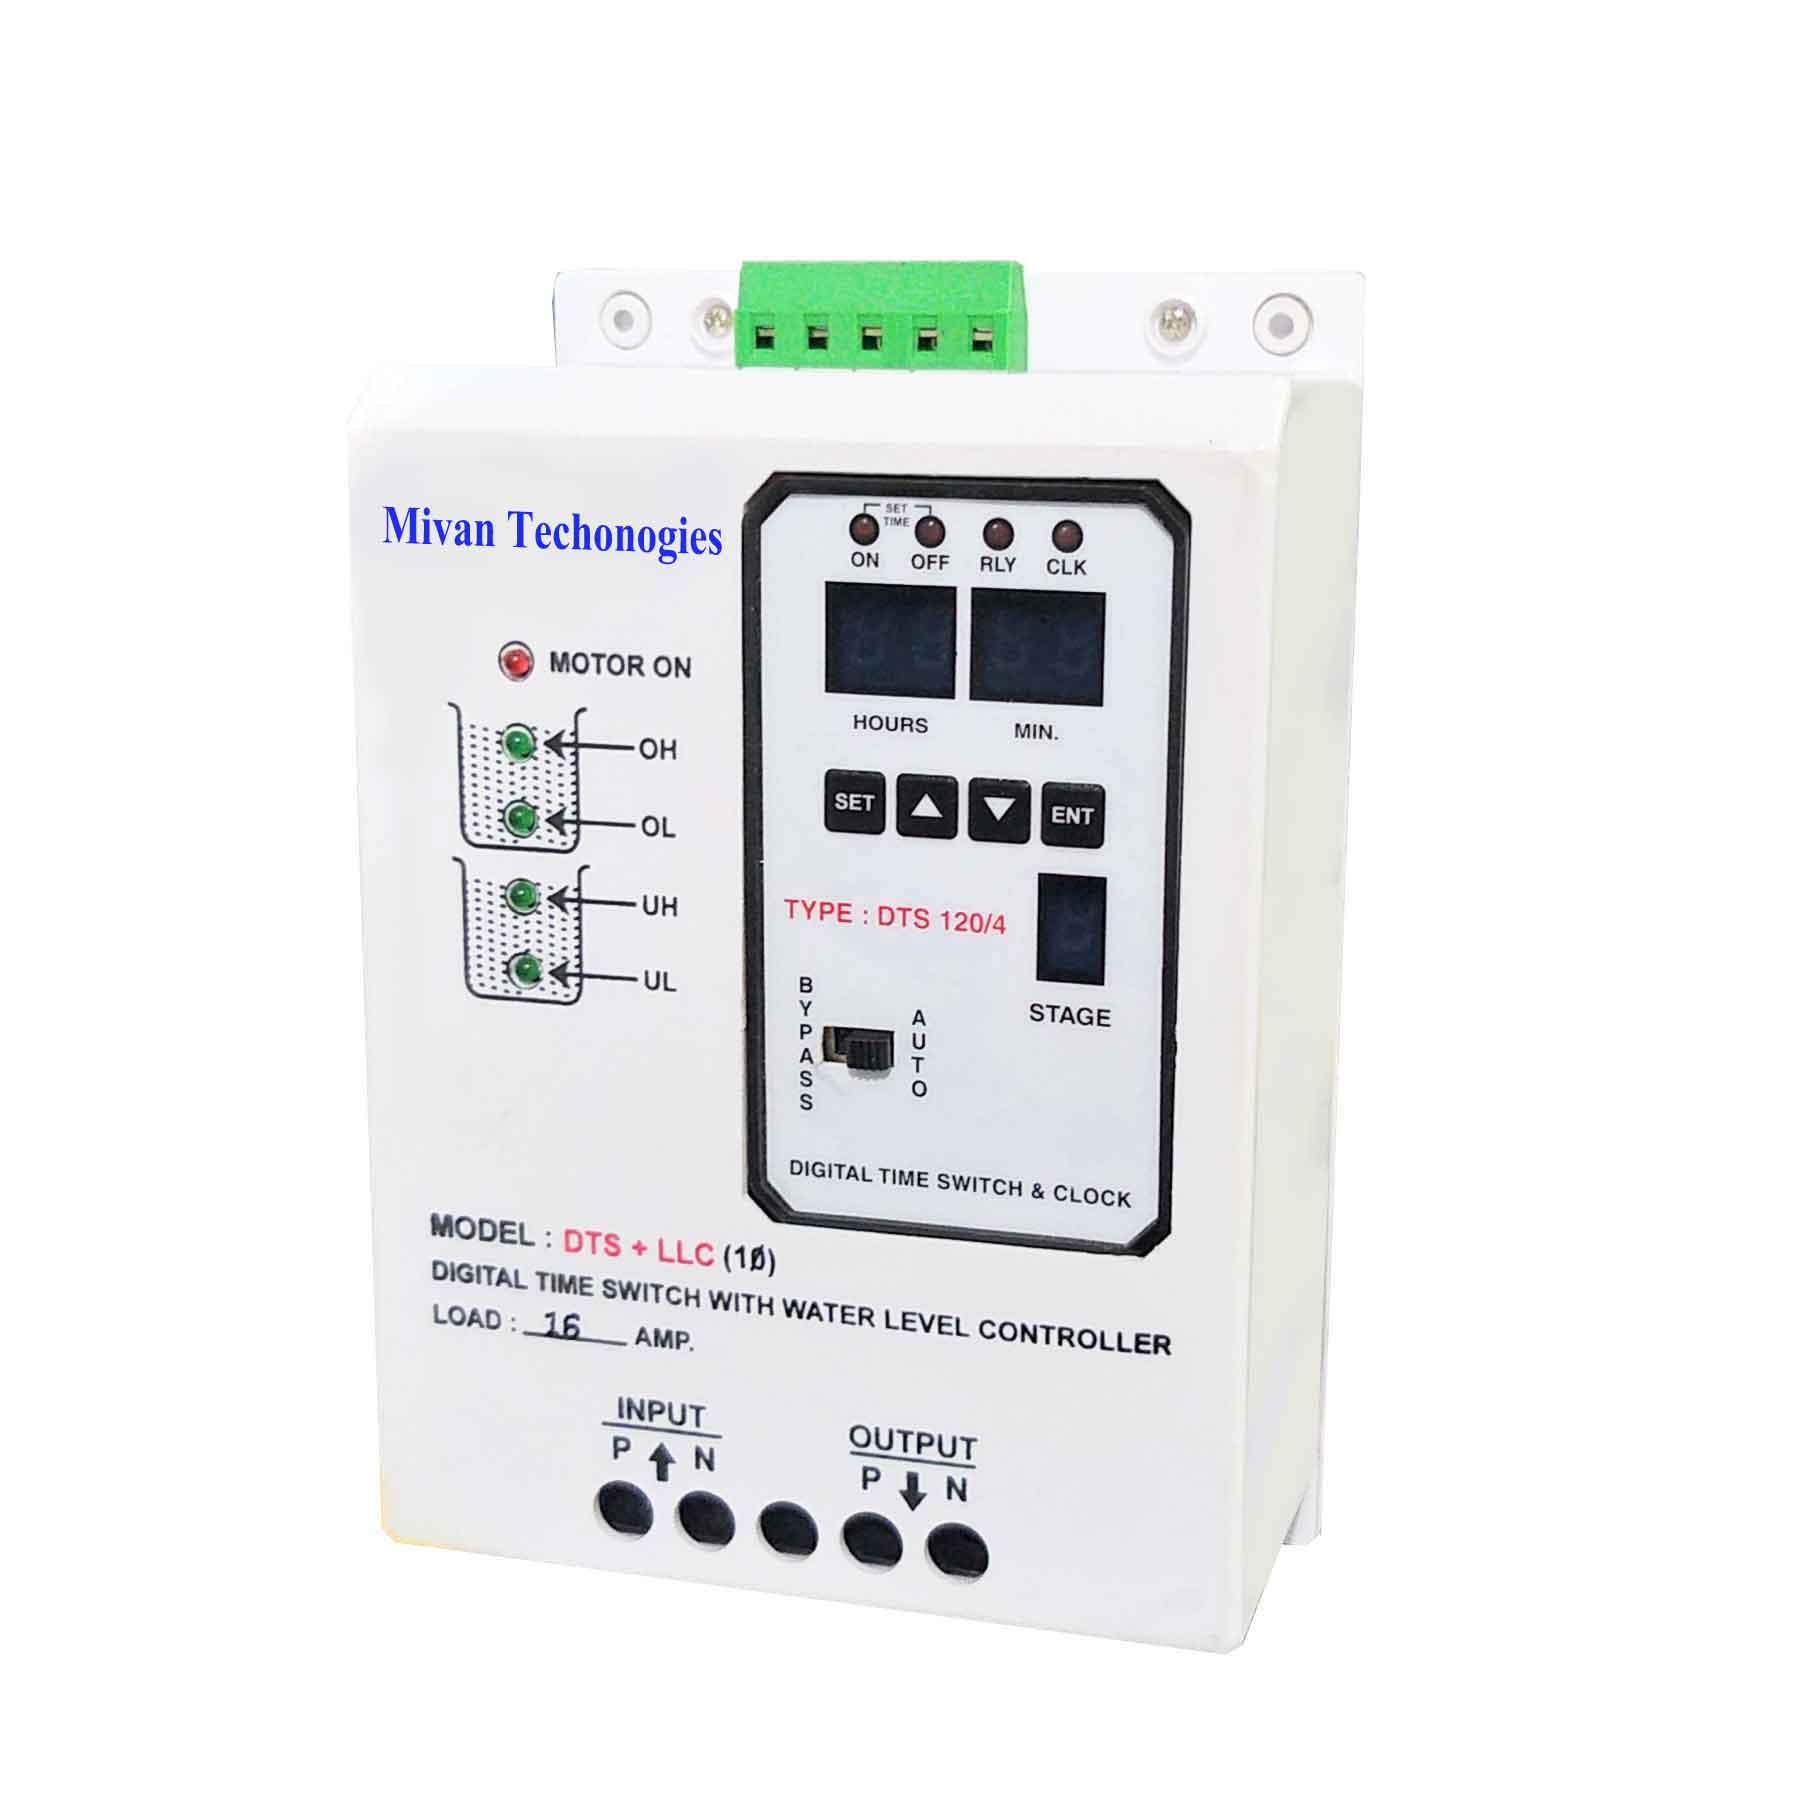 DTS LLC Water level controller with time switch with indicators for both tank